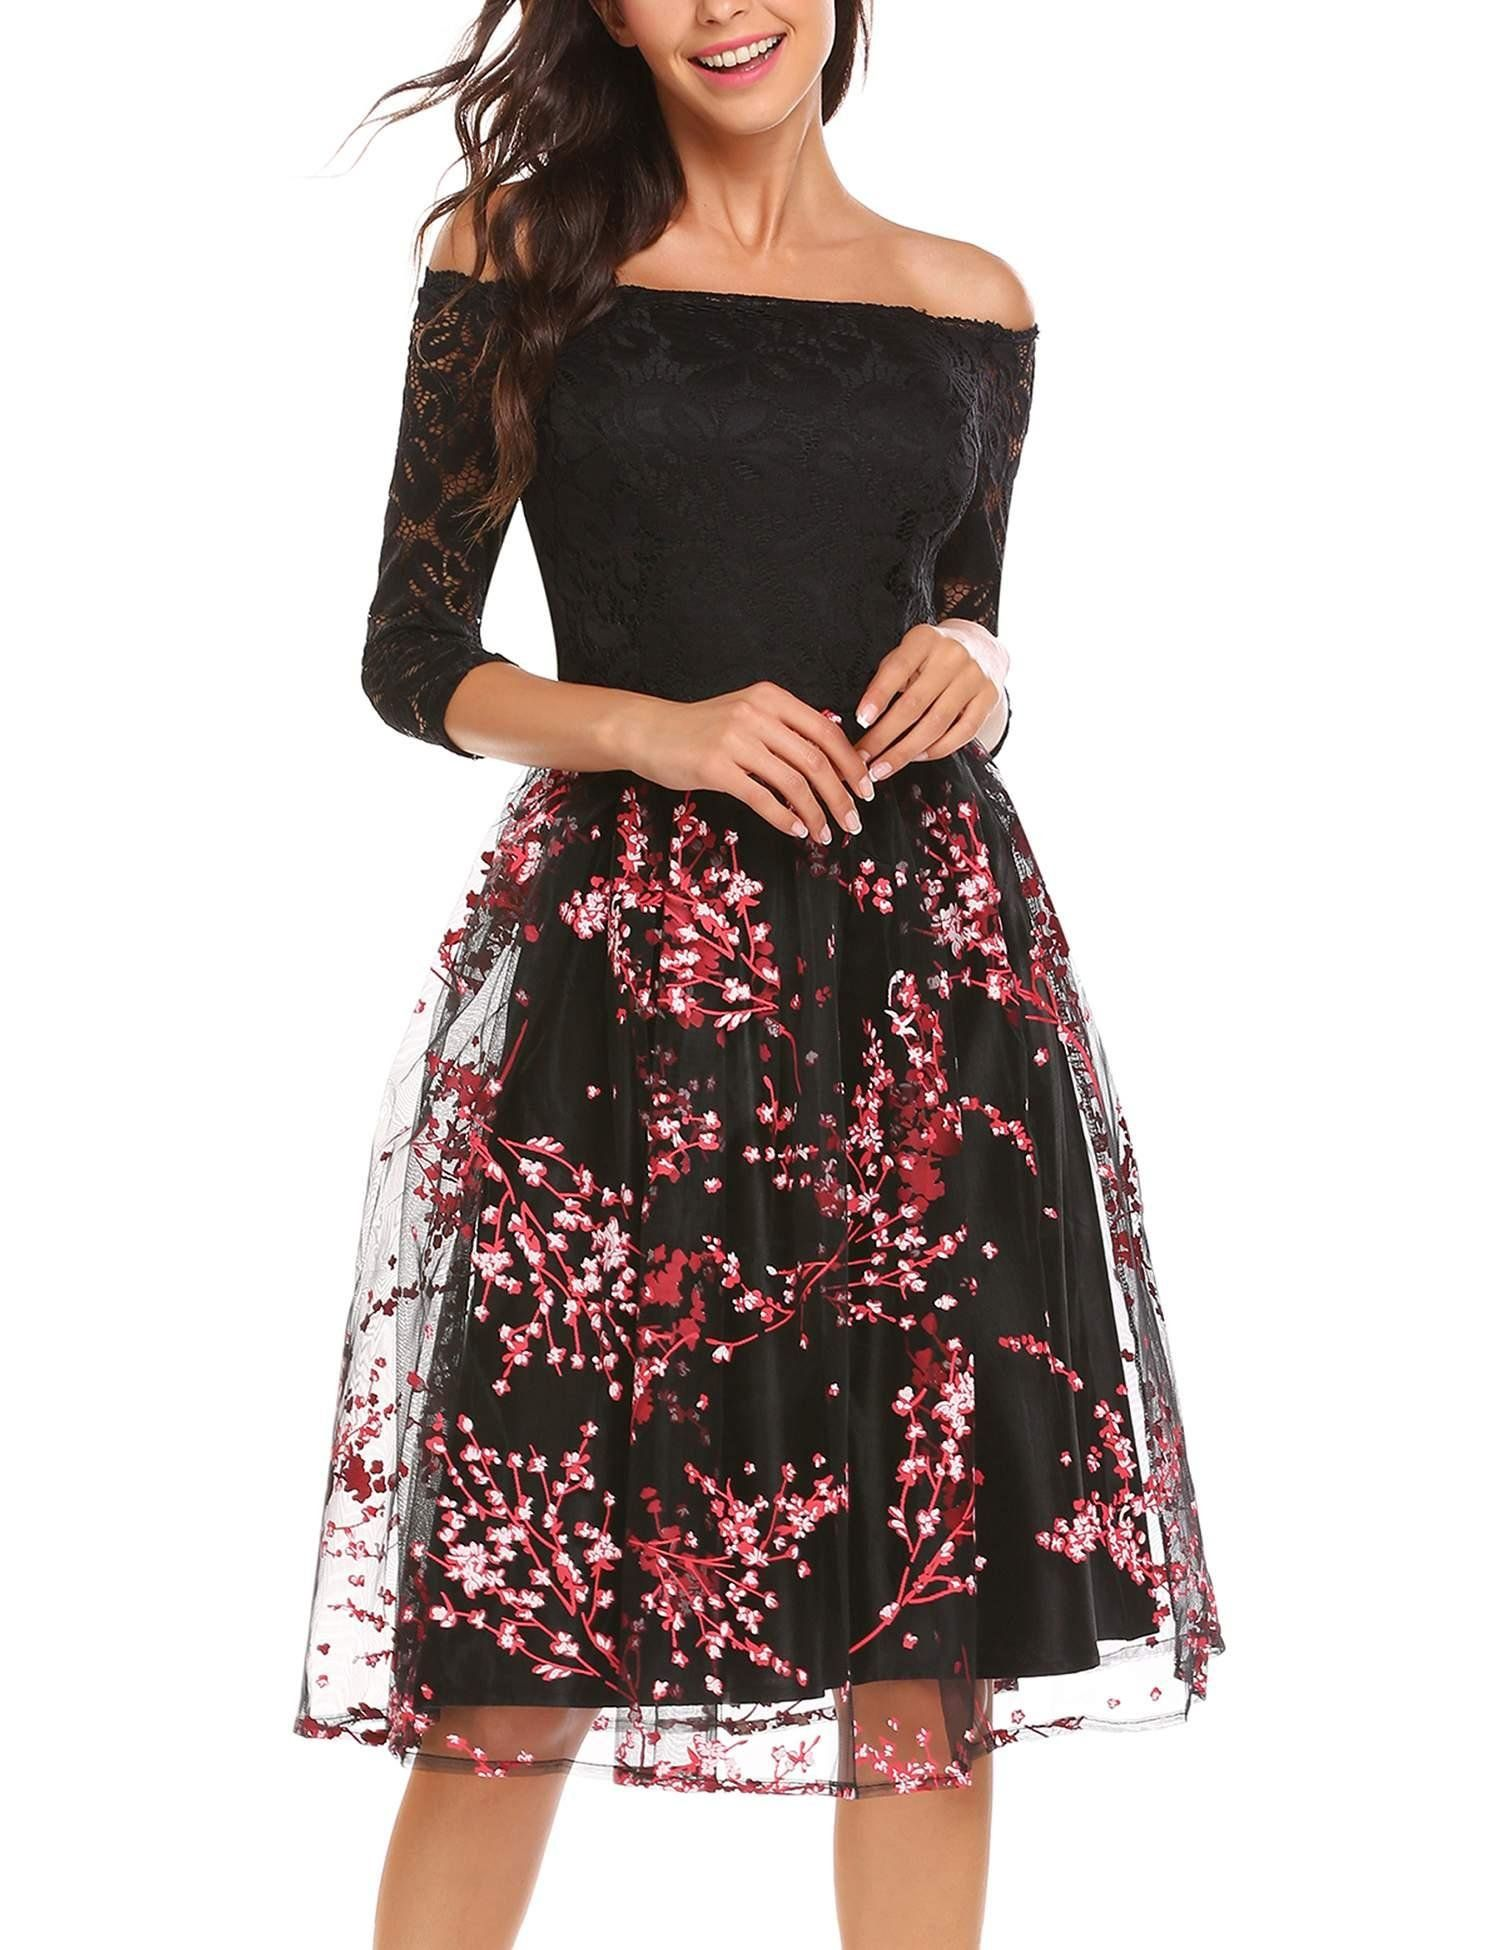 3dbf0cbd7195 ANGVNS Womens Vintage Floral Lace Long Sleeve Boat Neck Cocktail Formal  Swing Dress Red XL ** To view further for this item, visit the image link.